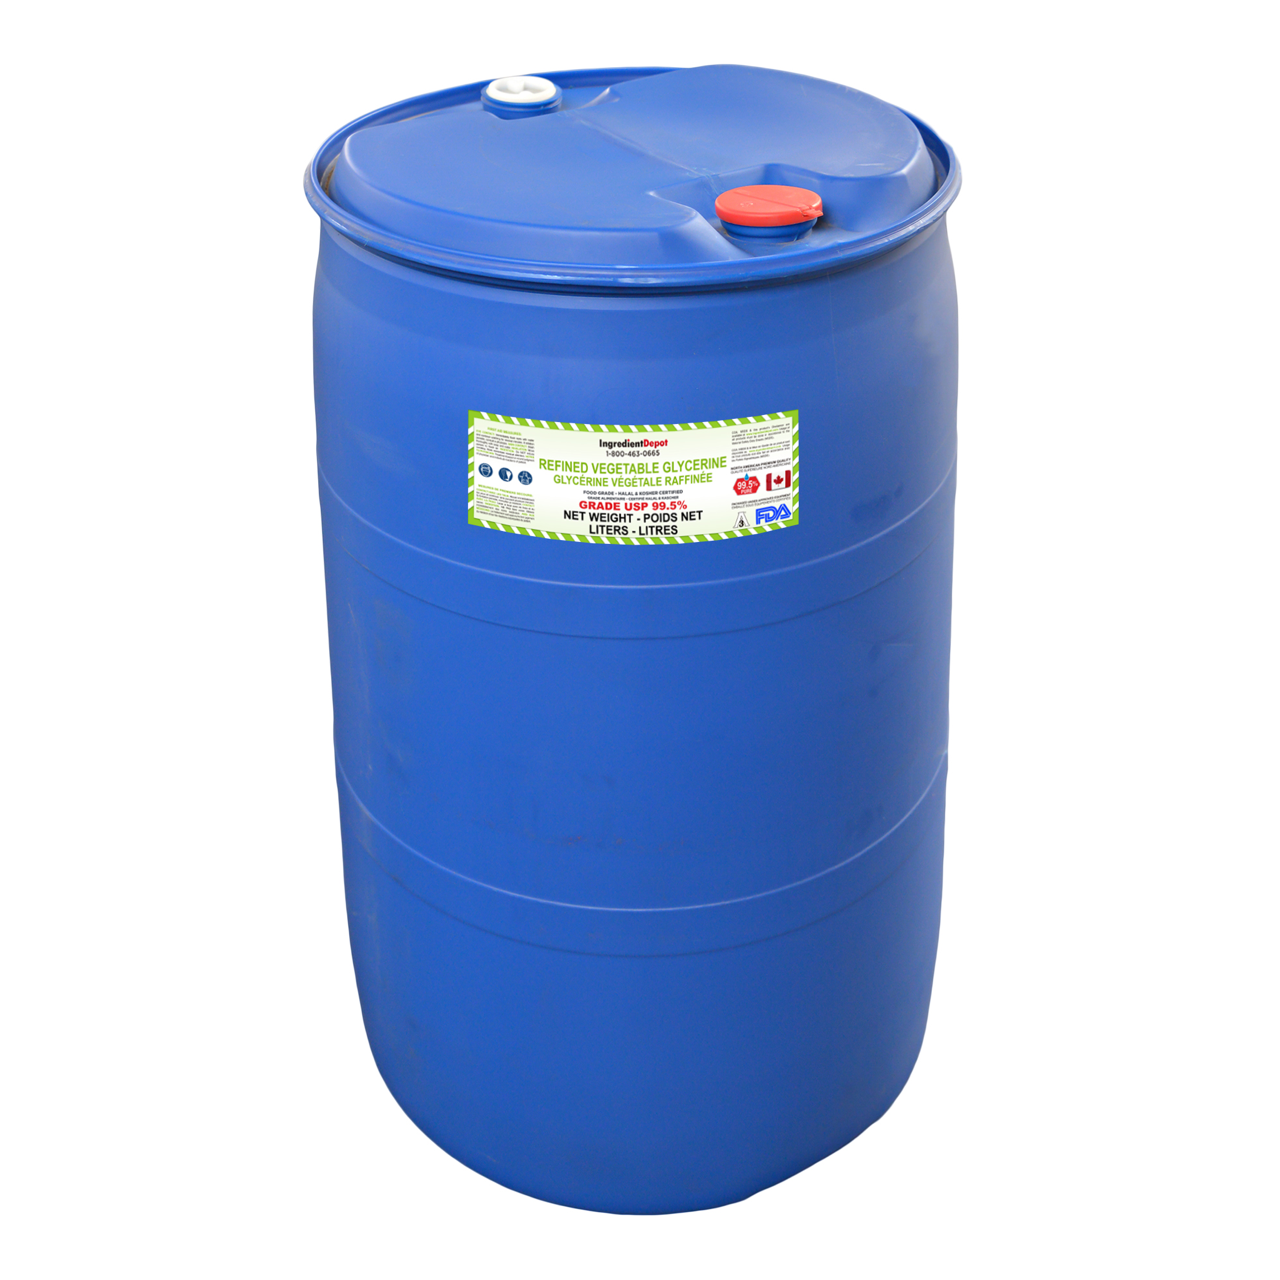 Vegetable Glycerin 99.5% USP Food Grade | 200 litres in a Drum